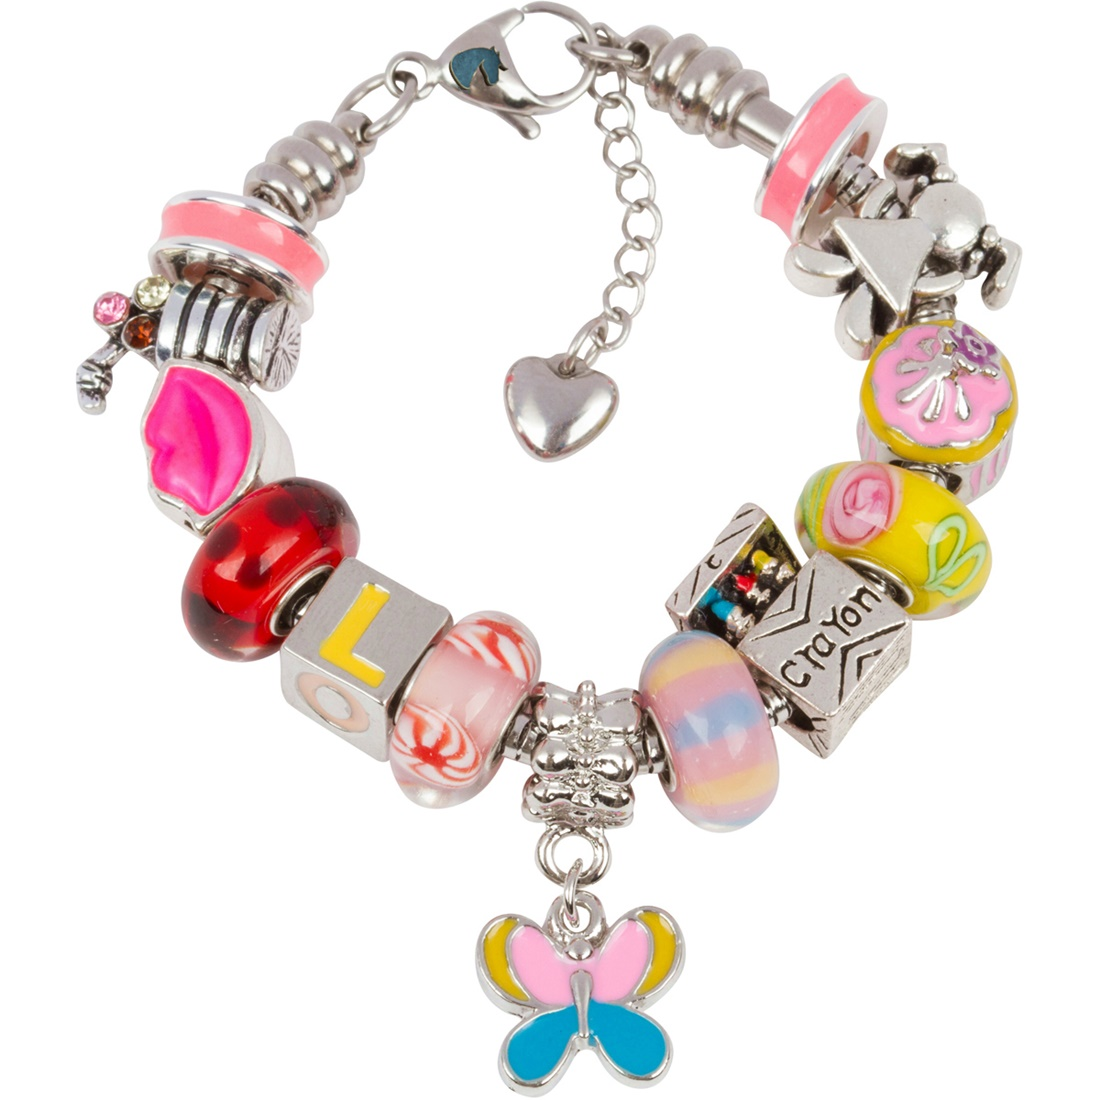 Girls Charm Bracelet With Charms, Fits Pandora Jewelry, First Day Of School, Pink 6.5 Inch (16.5 cm)